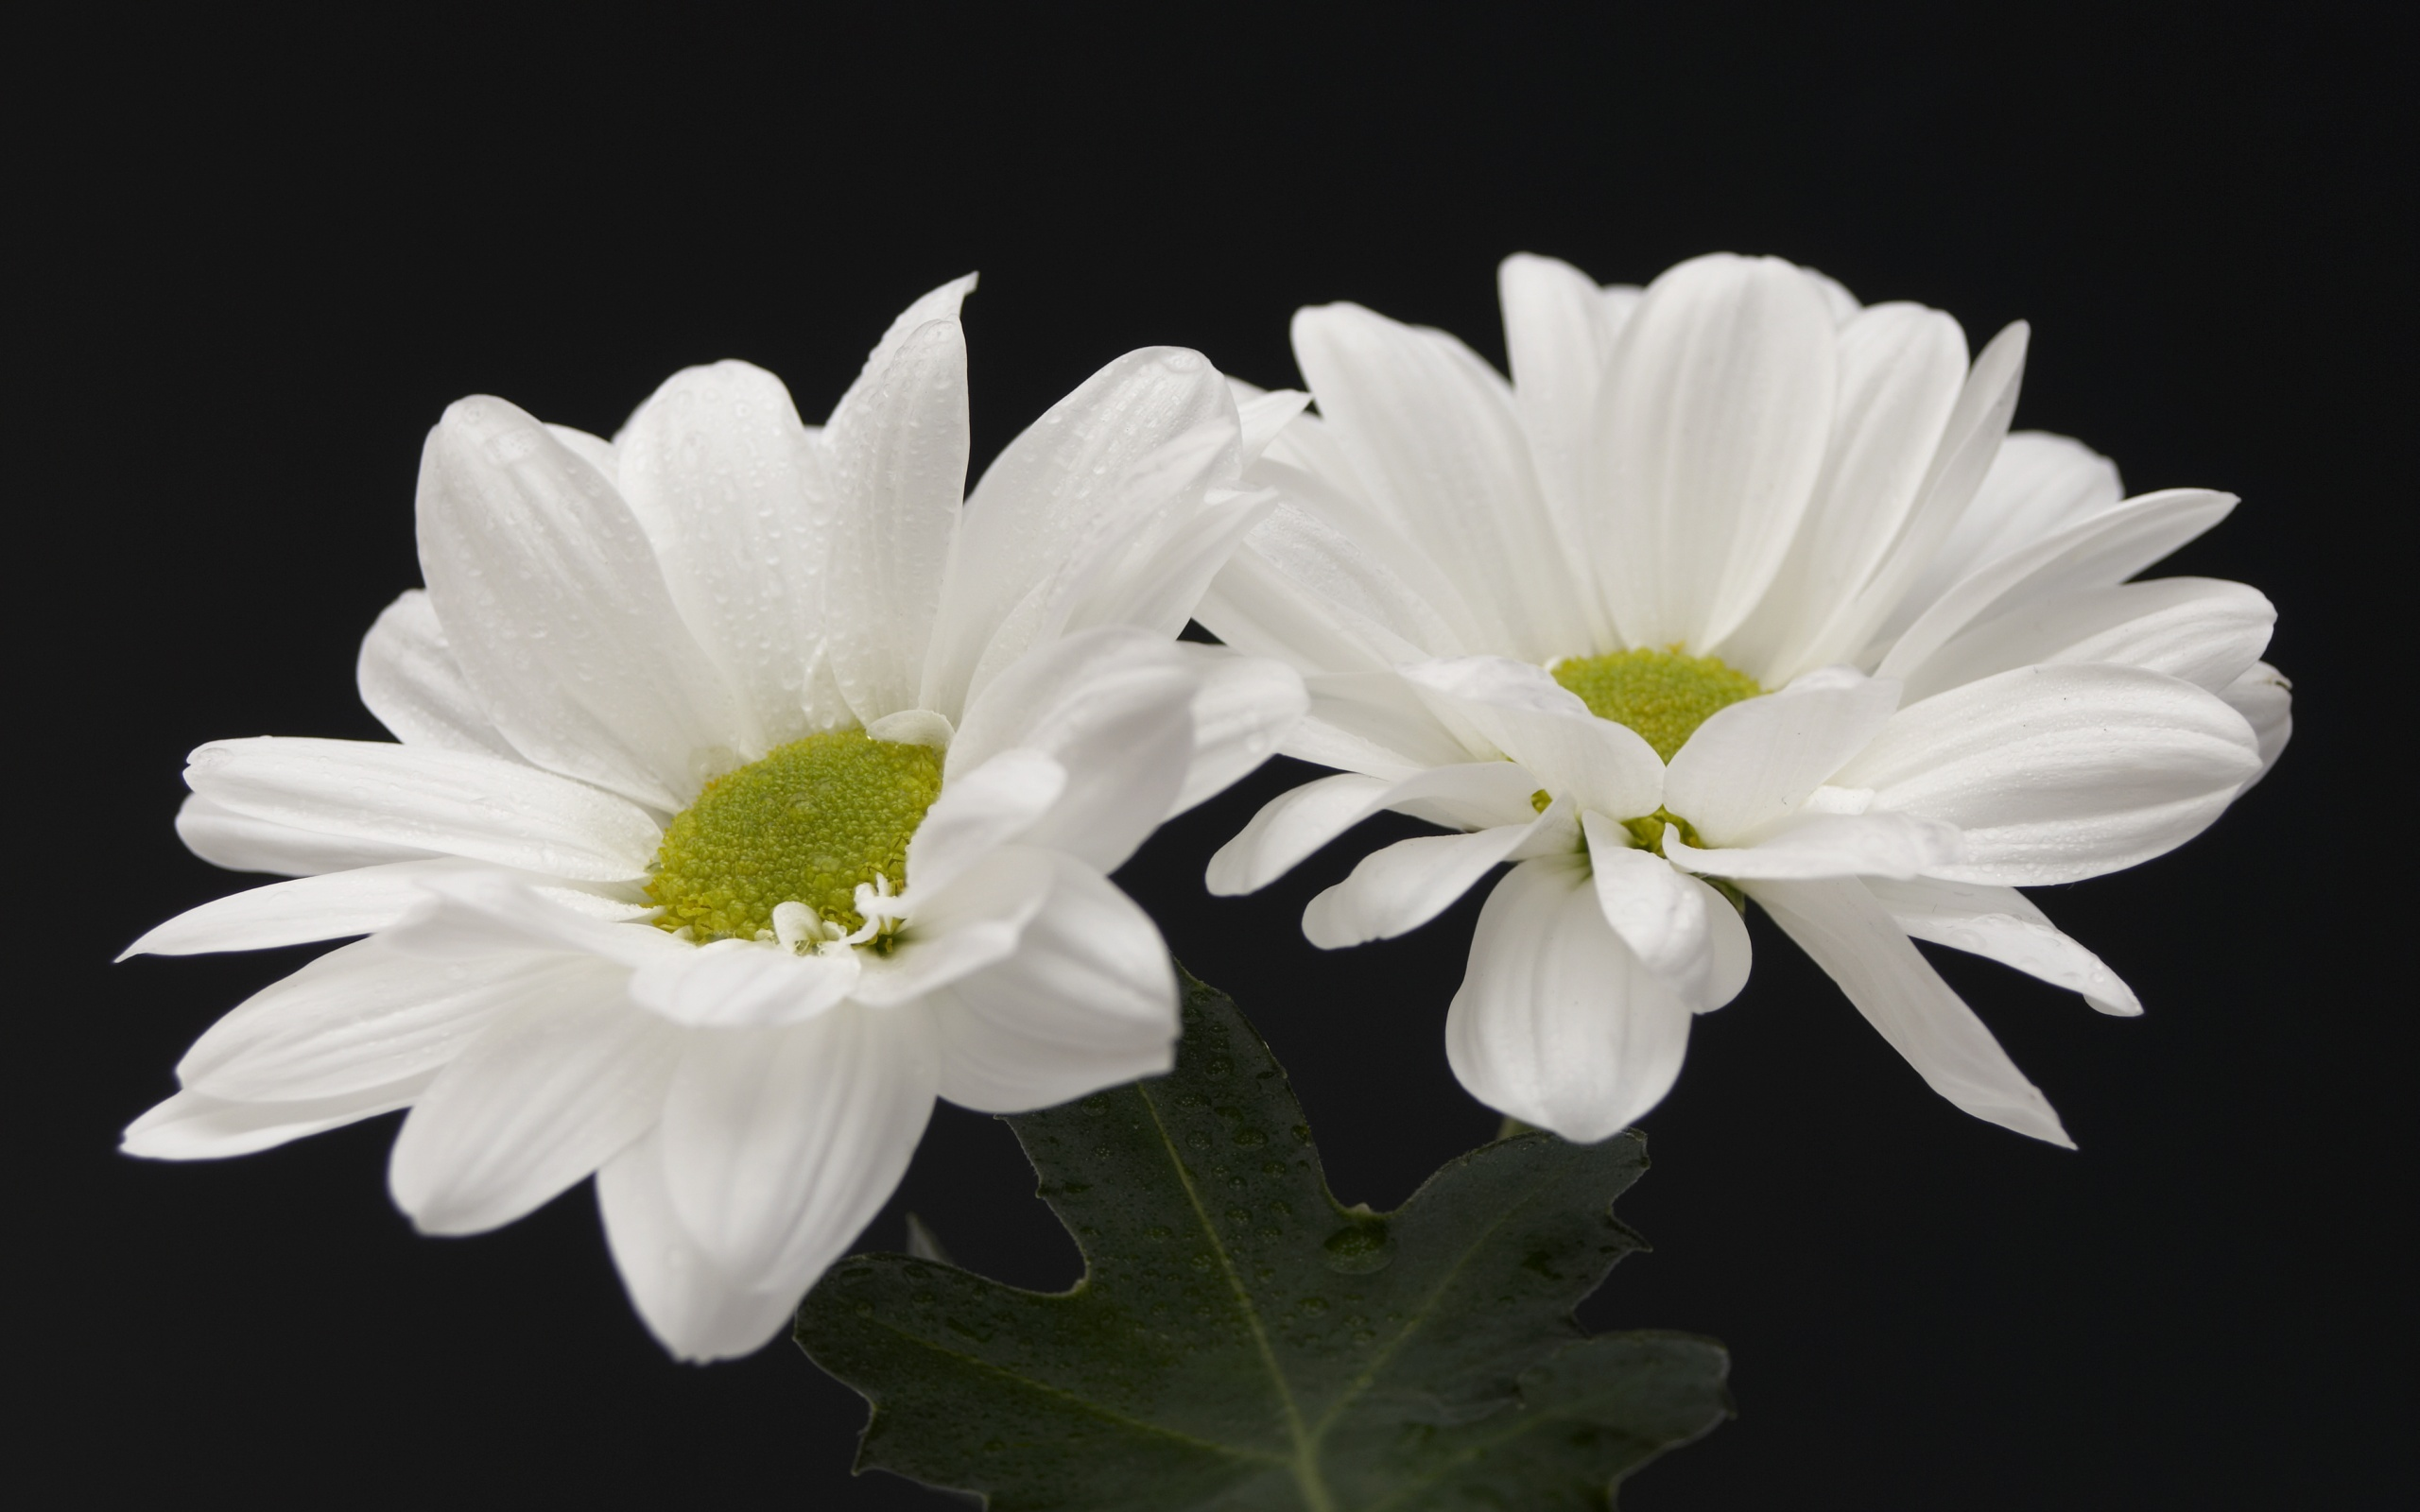 Free photos of white flowers png royalty free library HD Flower Wallpaper Free: White Flowers Wallpaper png royalty free library